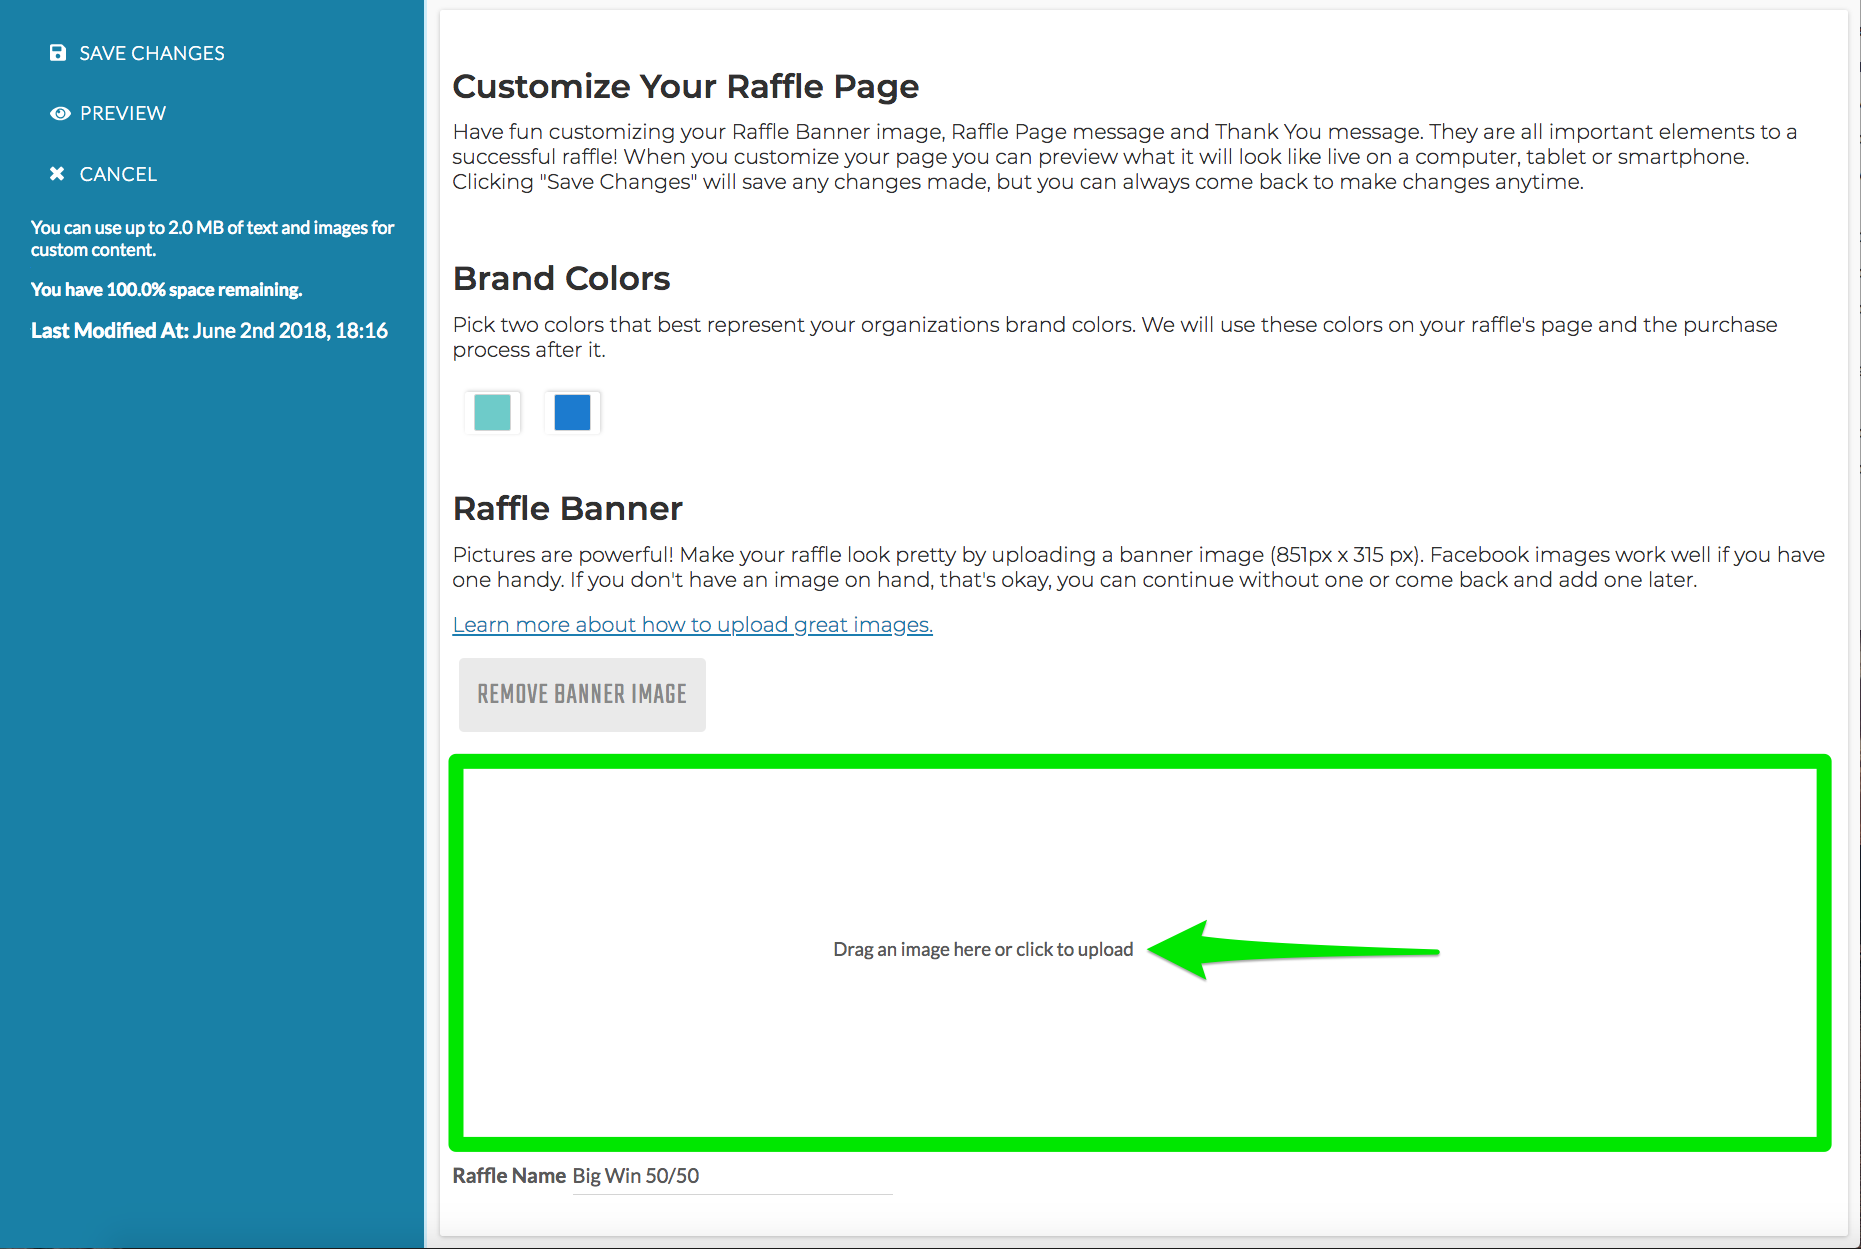 Design_Your_Raffle_Page_and_Step_6_-__Customize_the_Look_of_Raffle_Page_and_TrackingTime.png